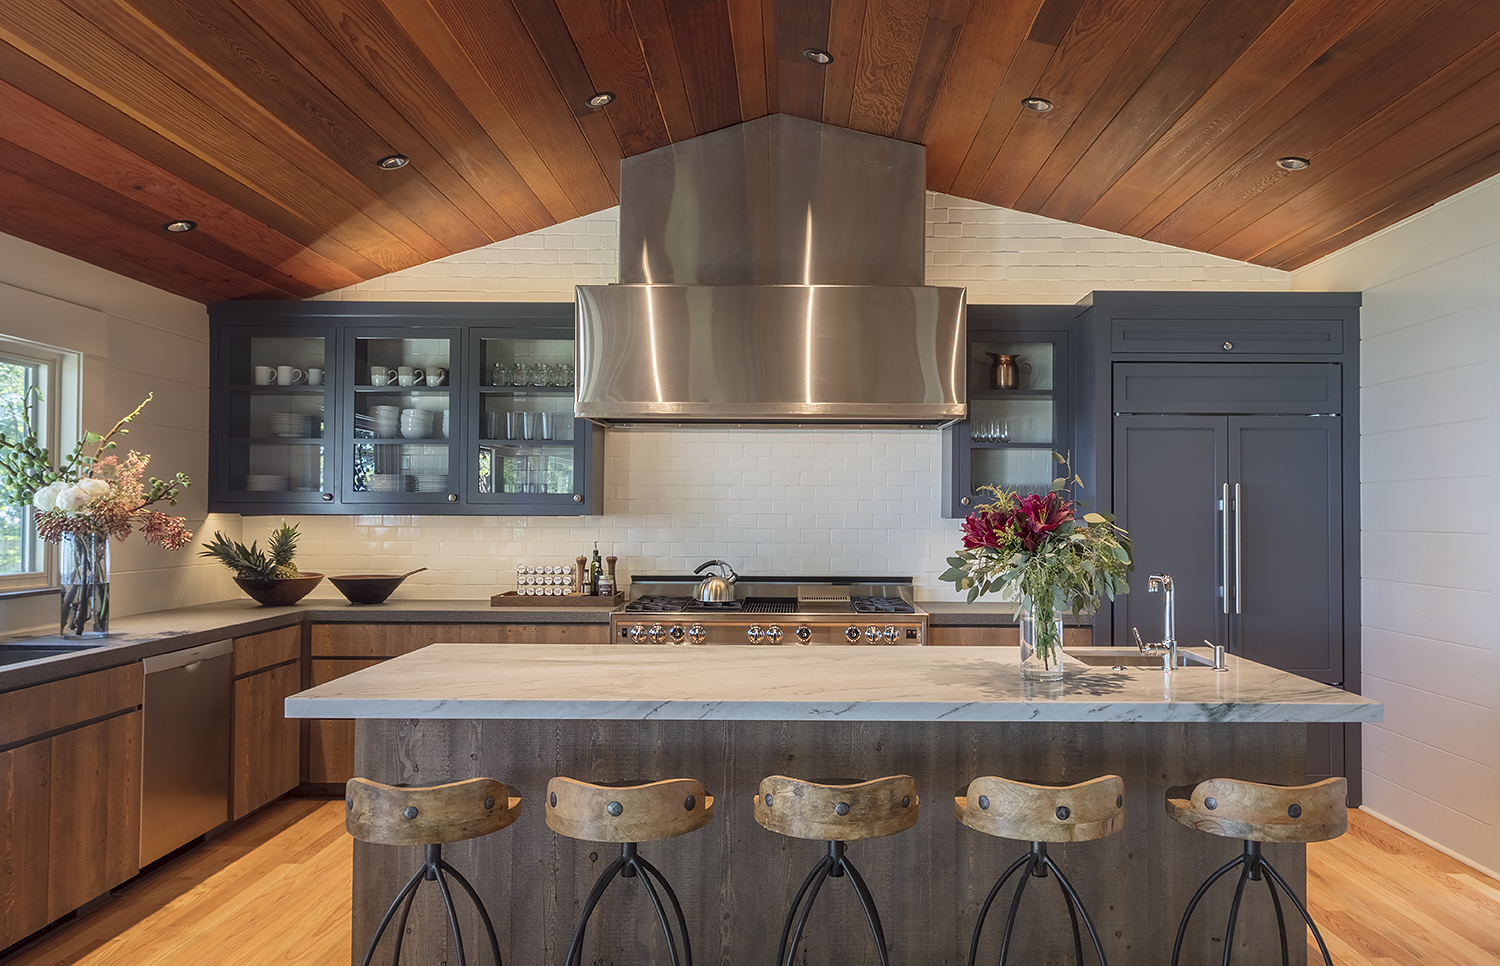 A beautifully-appointed kitchen in a Tahoe vacation home invites community, connection, and nourishment